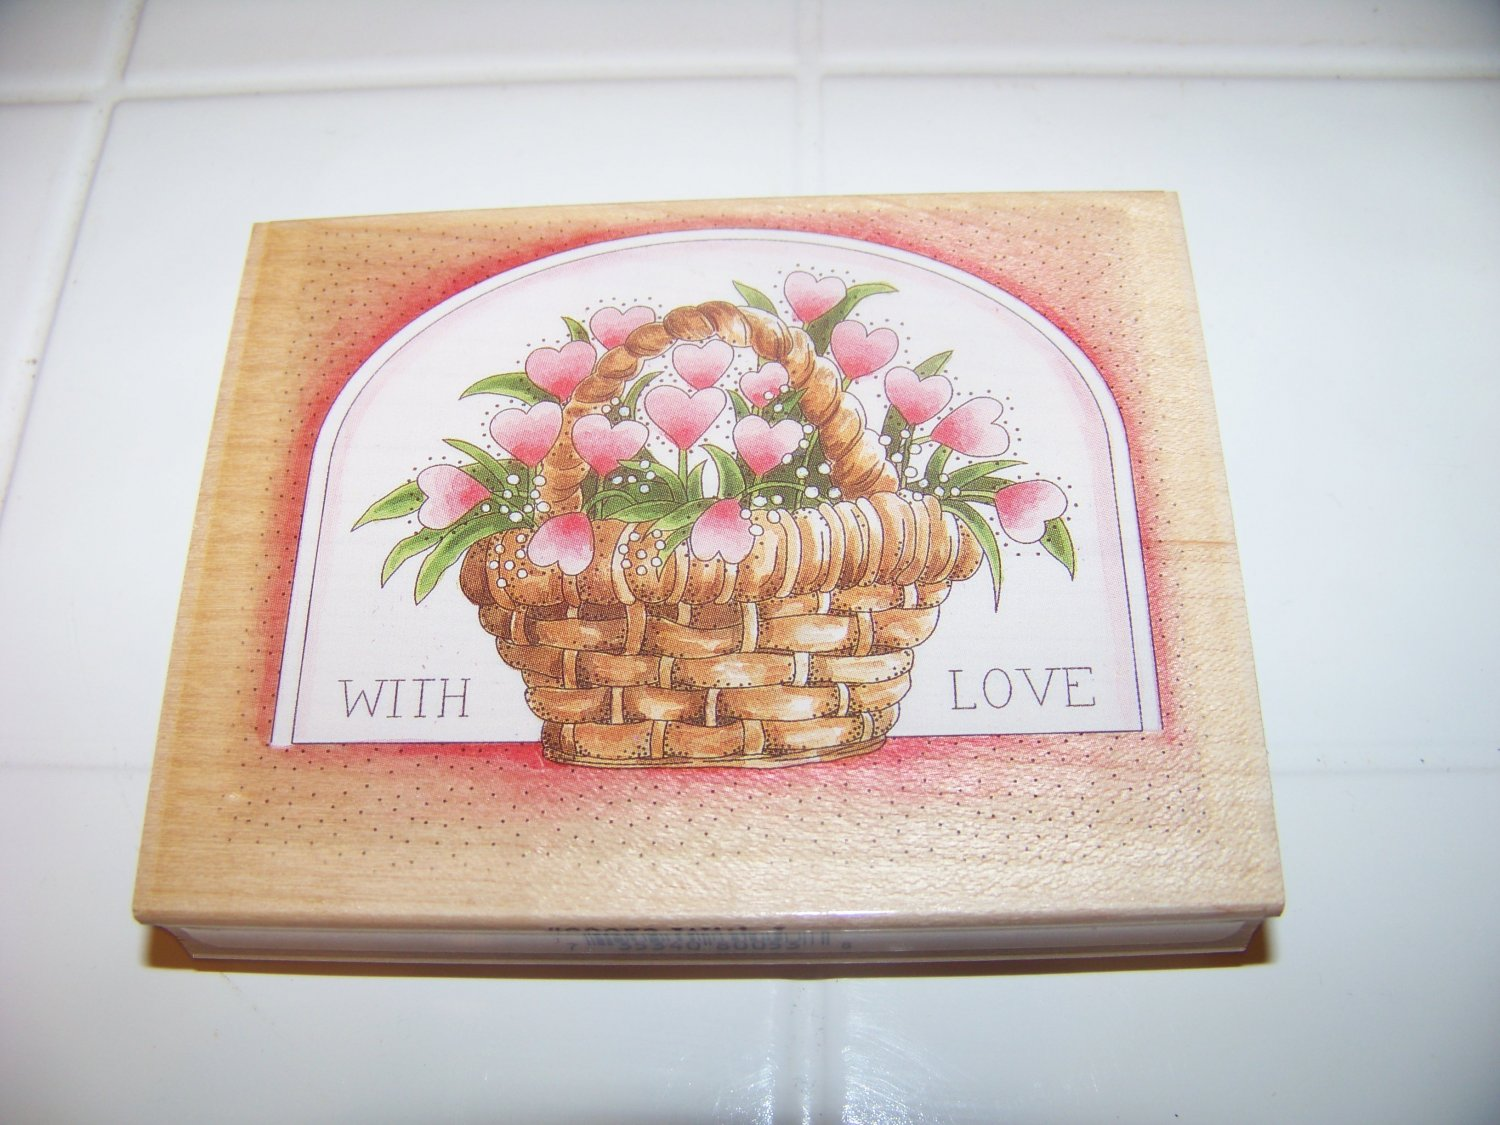 with love heart flower basket rubber stamp stamps happen